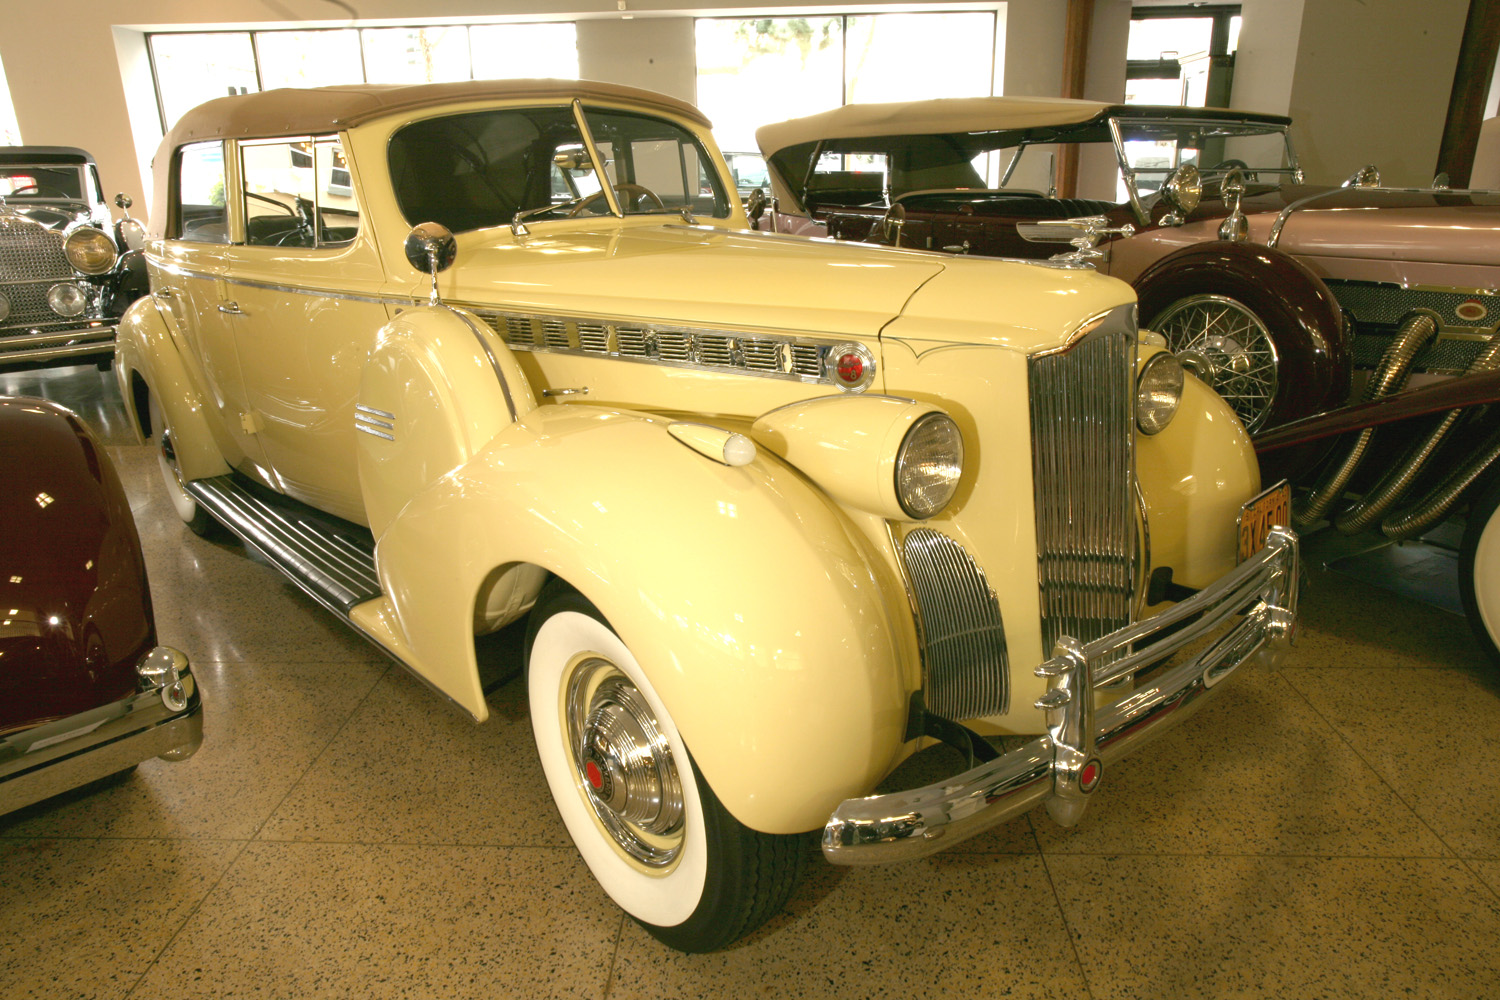 1940 Packard Model 1803 Convertible Sedan